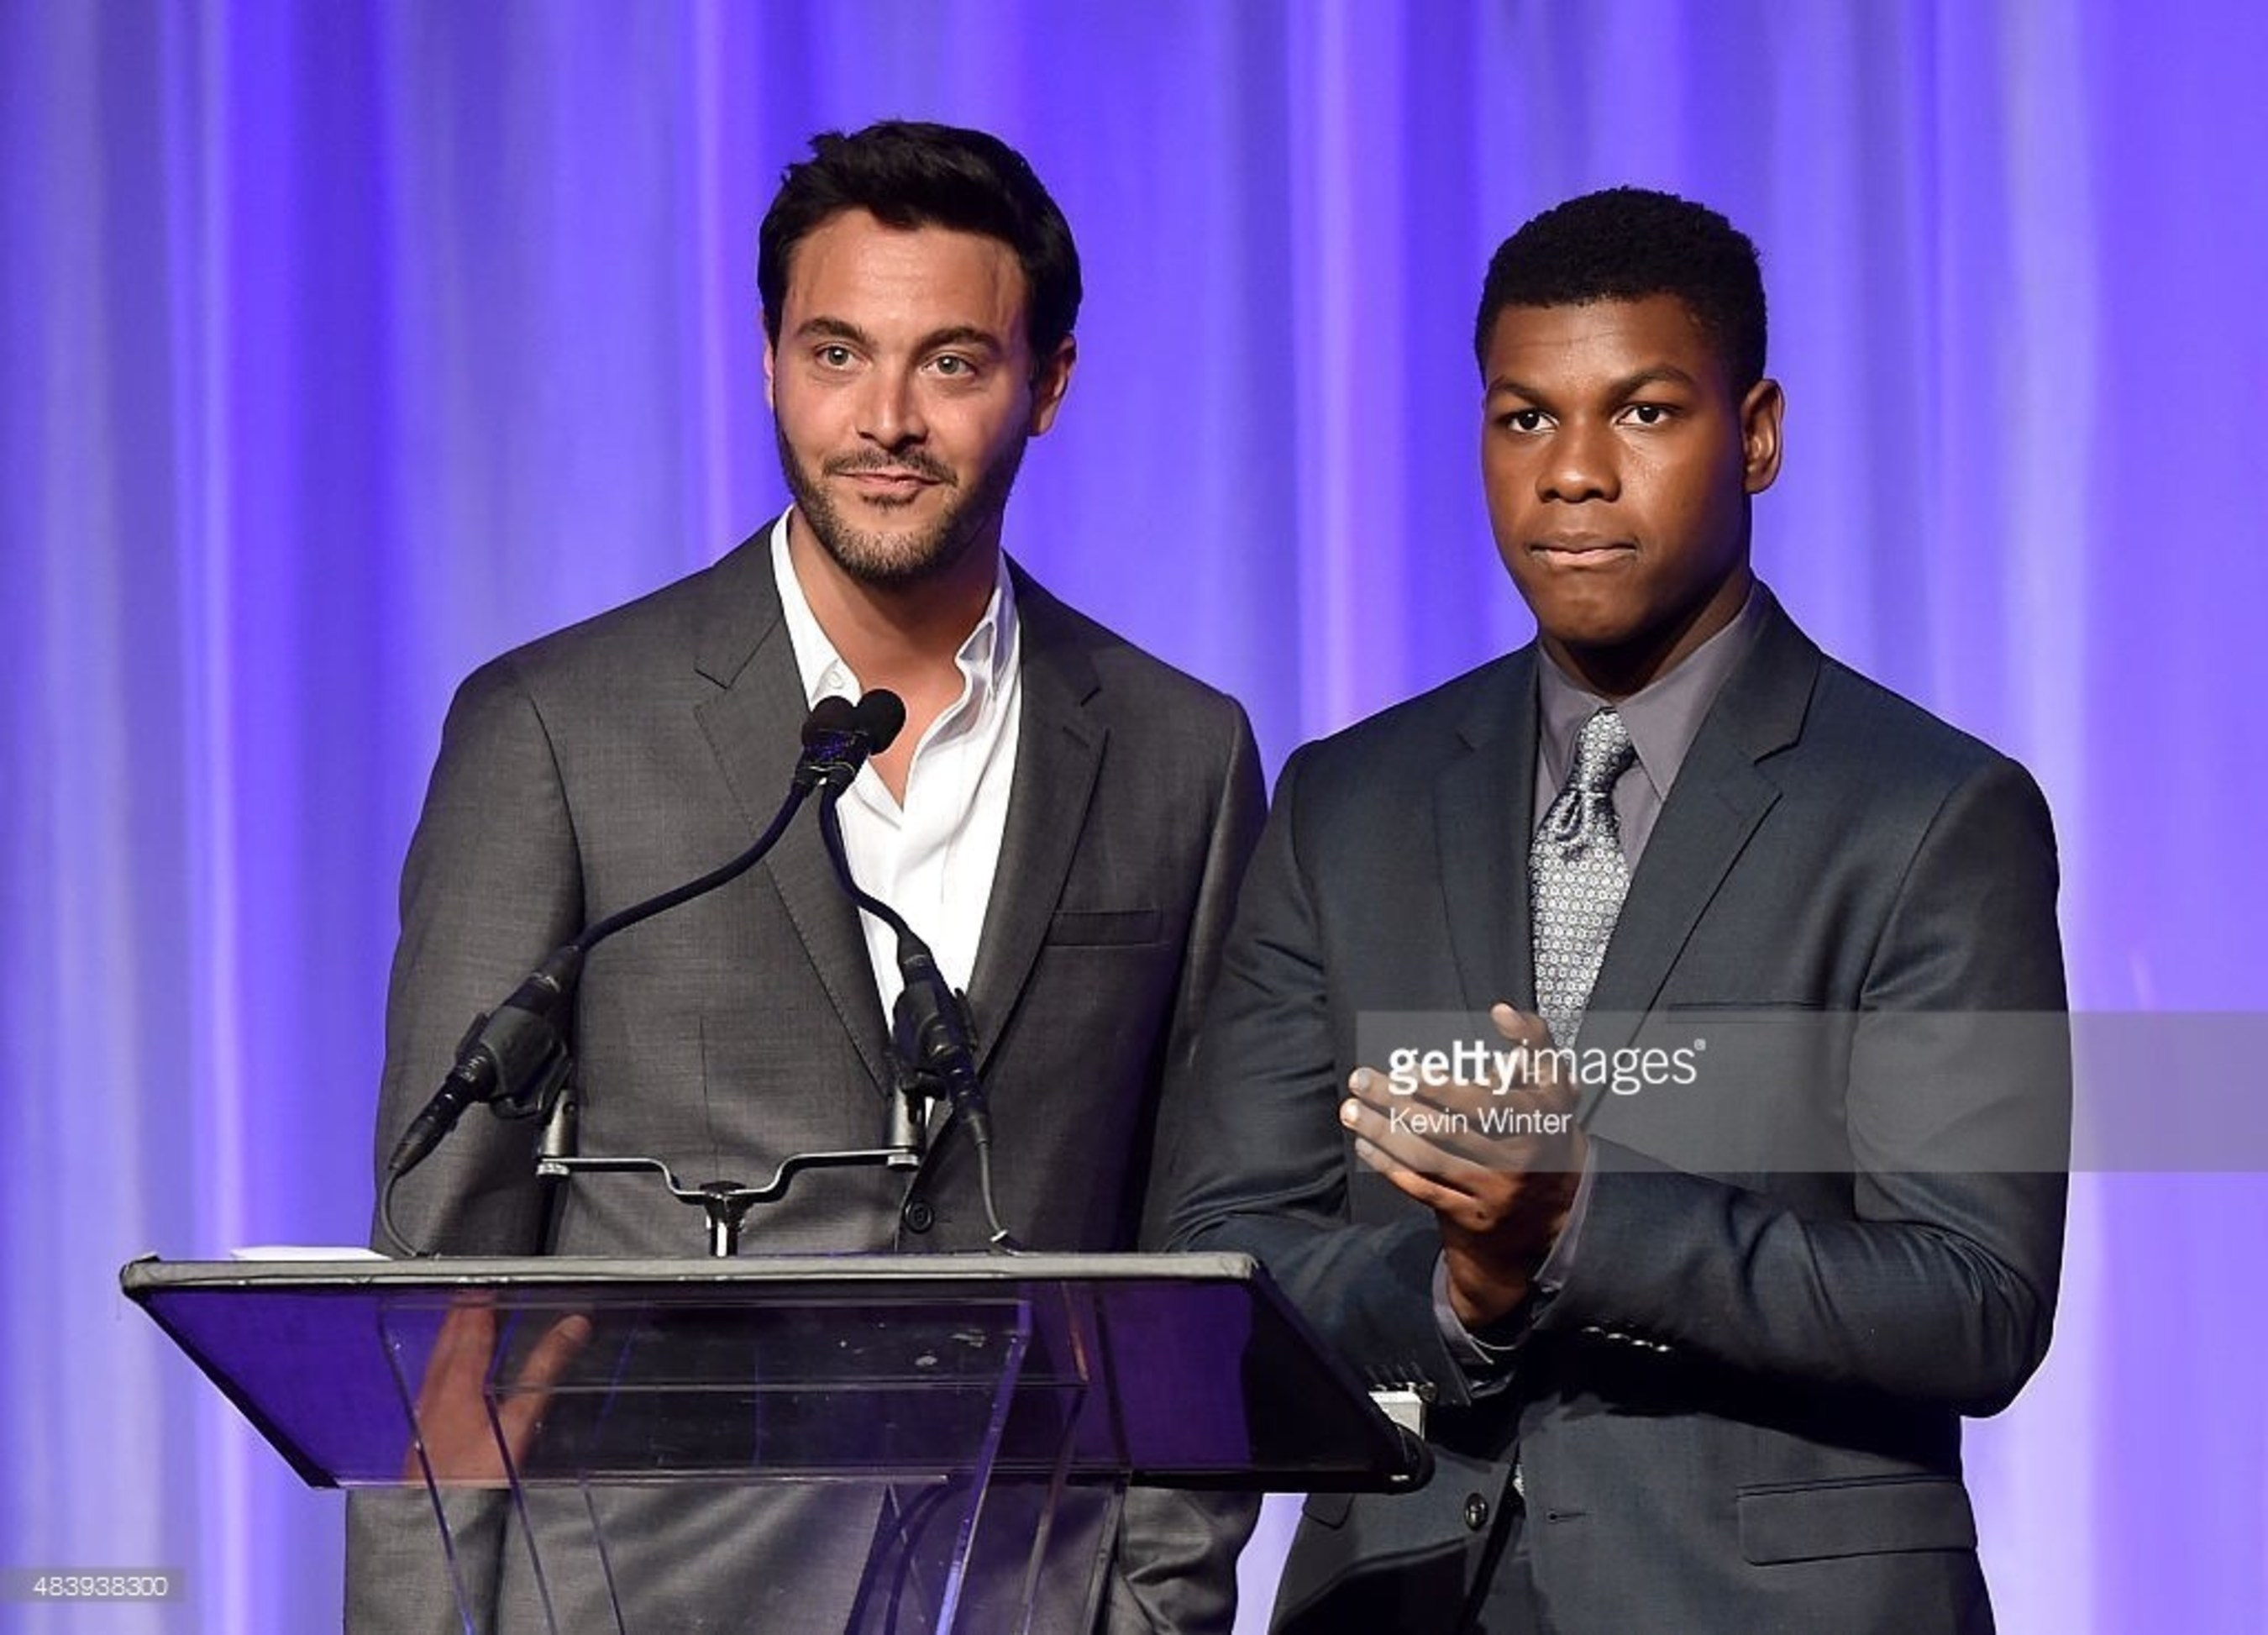 Jack Huston and John Boyega Accept HFPA Grant for Exceptional Minds